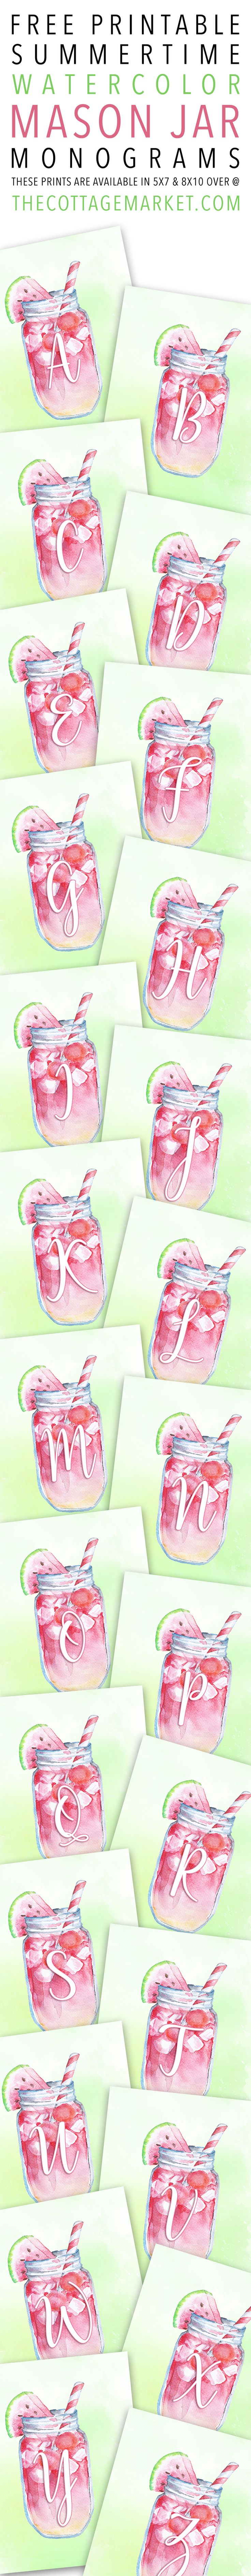 Free Printable Summertime Watercolor Mason Jar Monograms | The Cottage Market | Bloglovin'